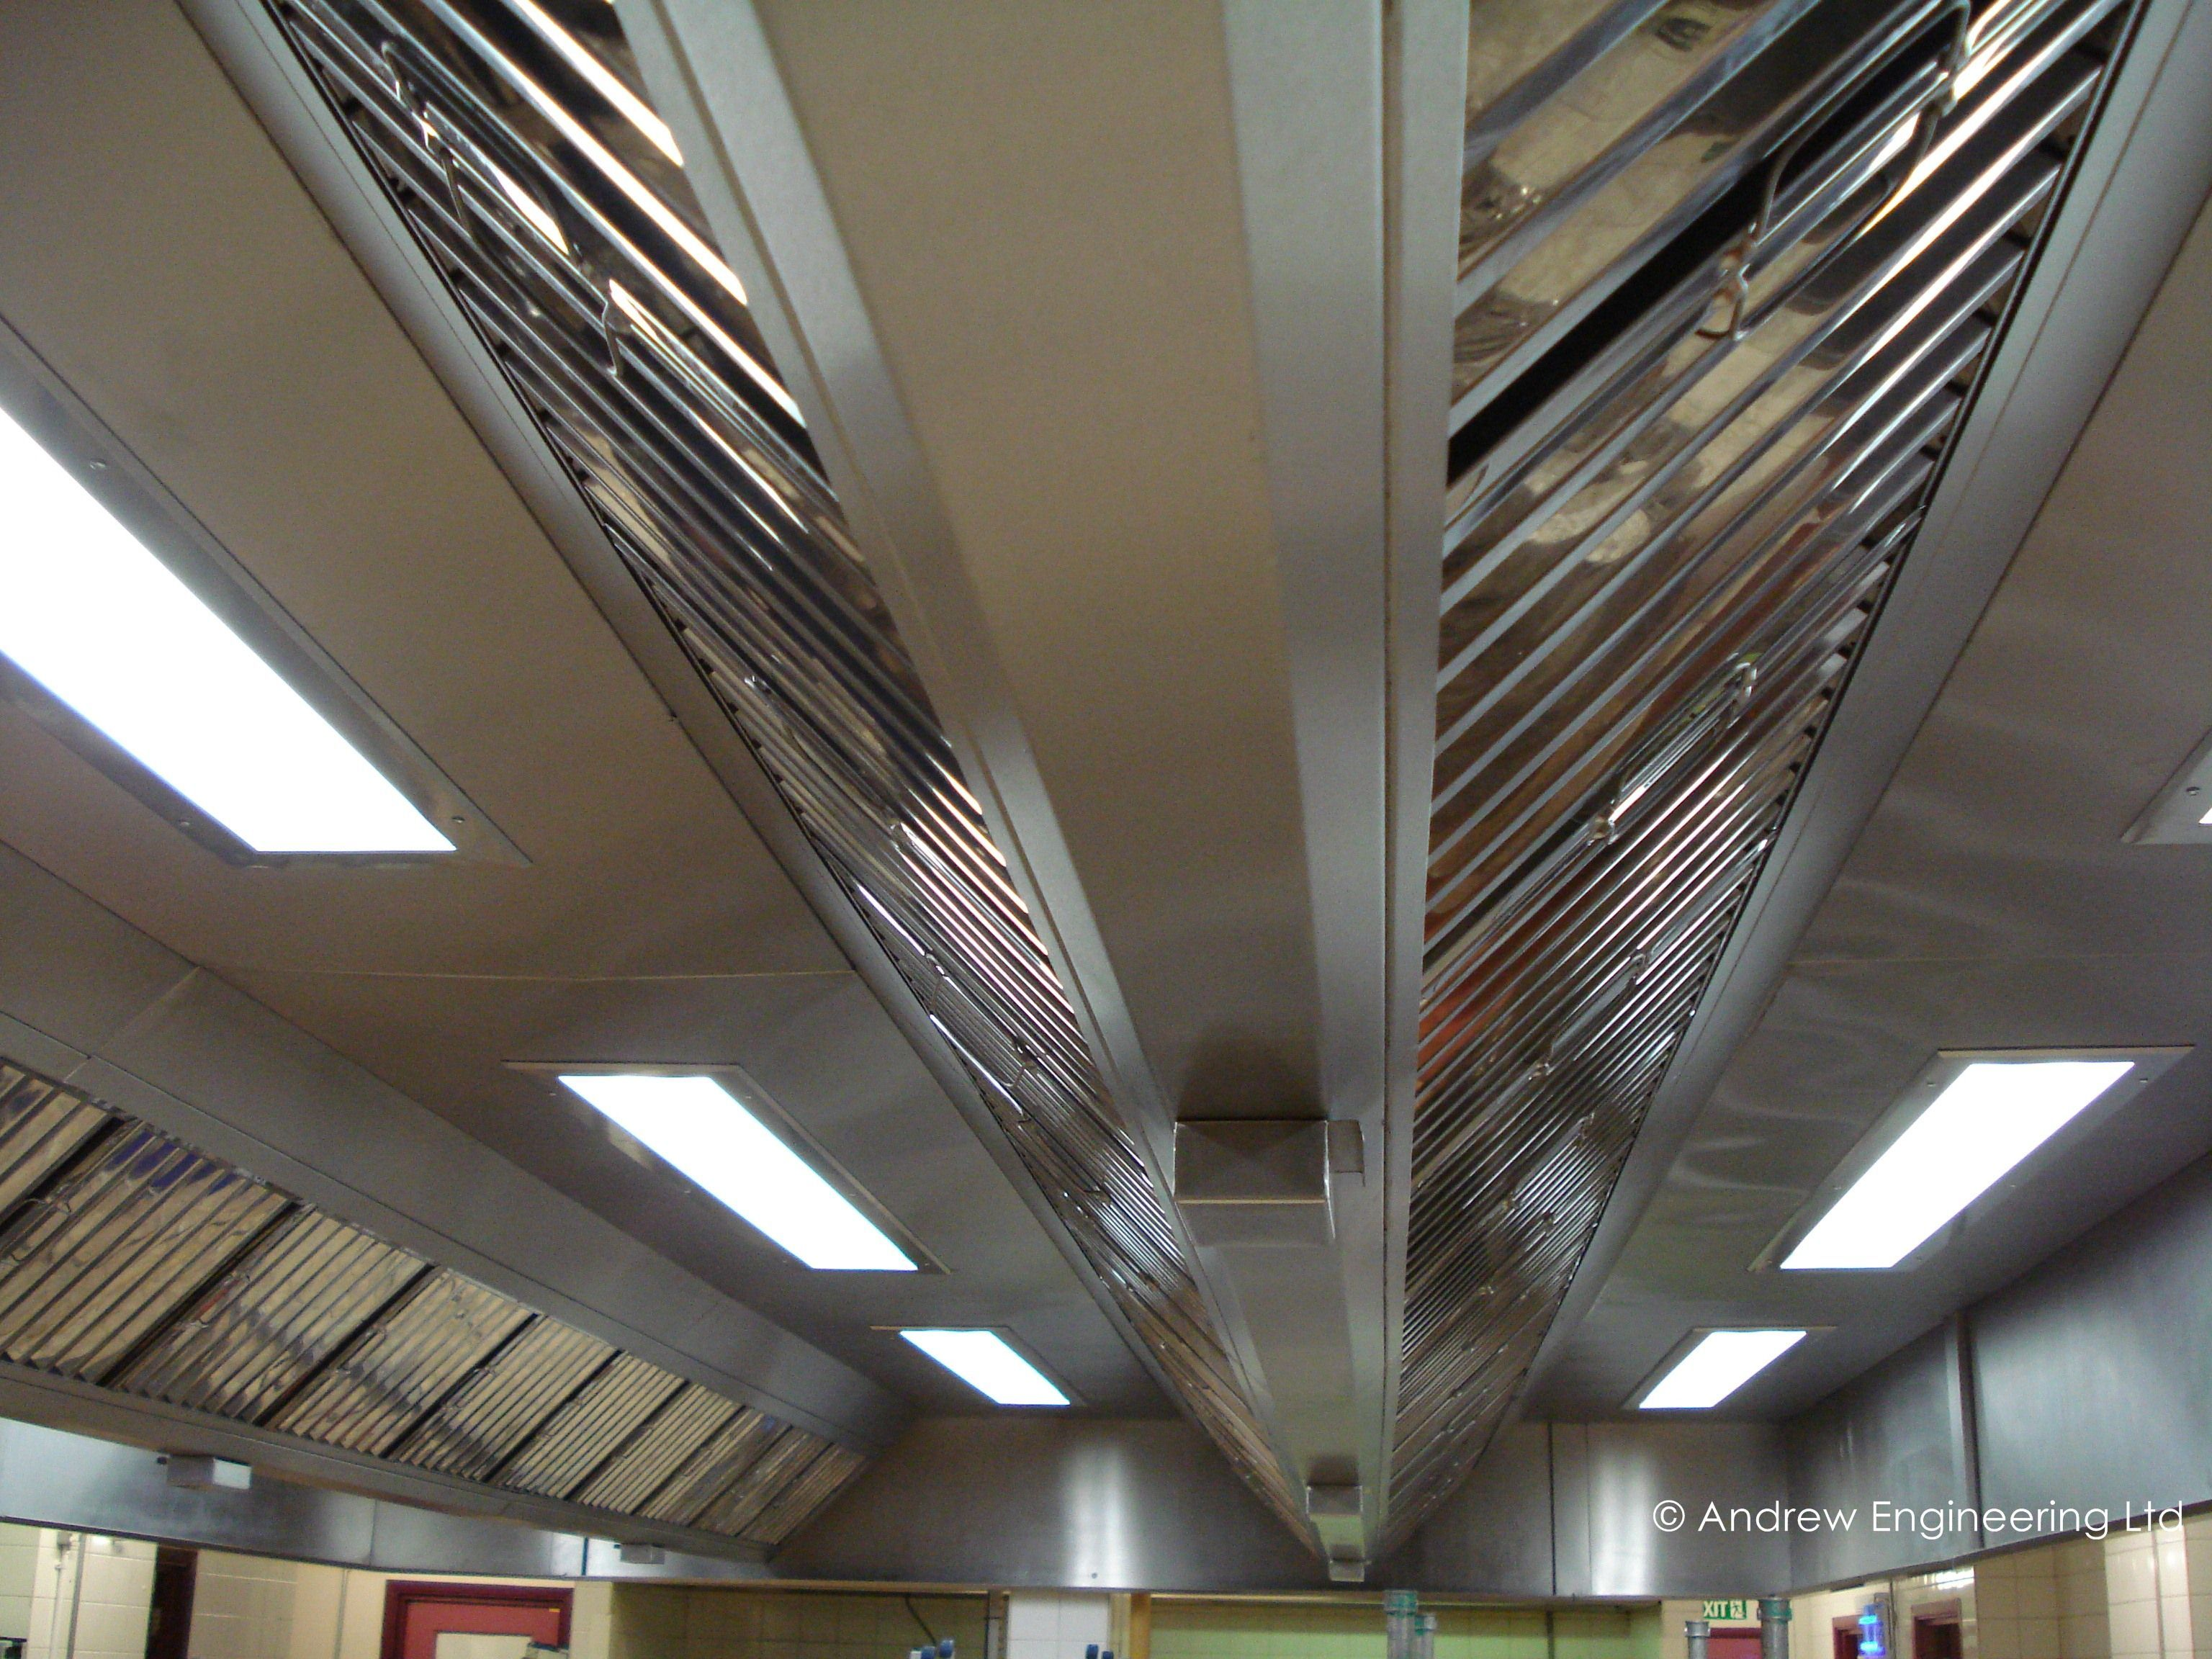 Island canopy with double bank of grease filters and recessed light fittings for a hospital kitchen & Island canopy with double bank of grease filters and recessed ...